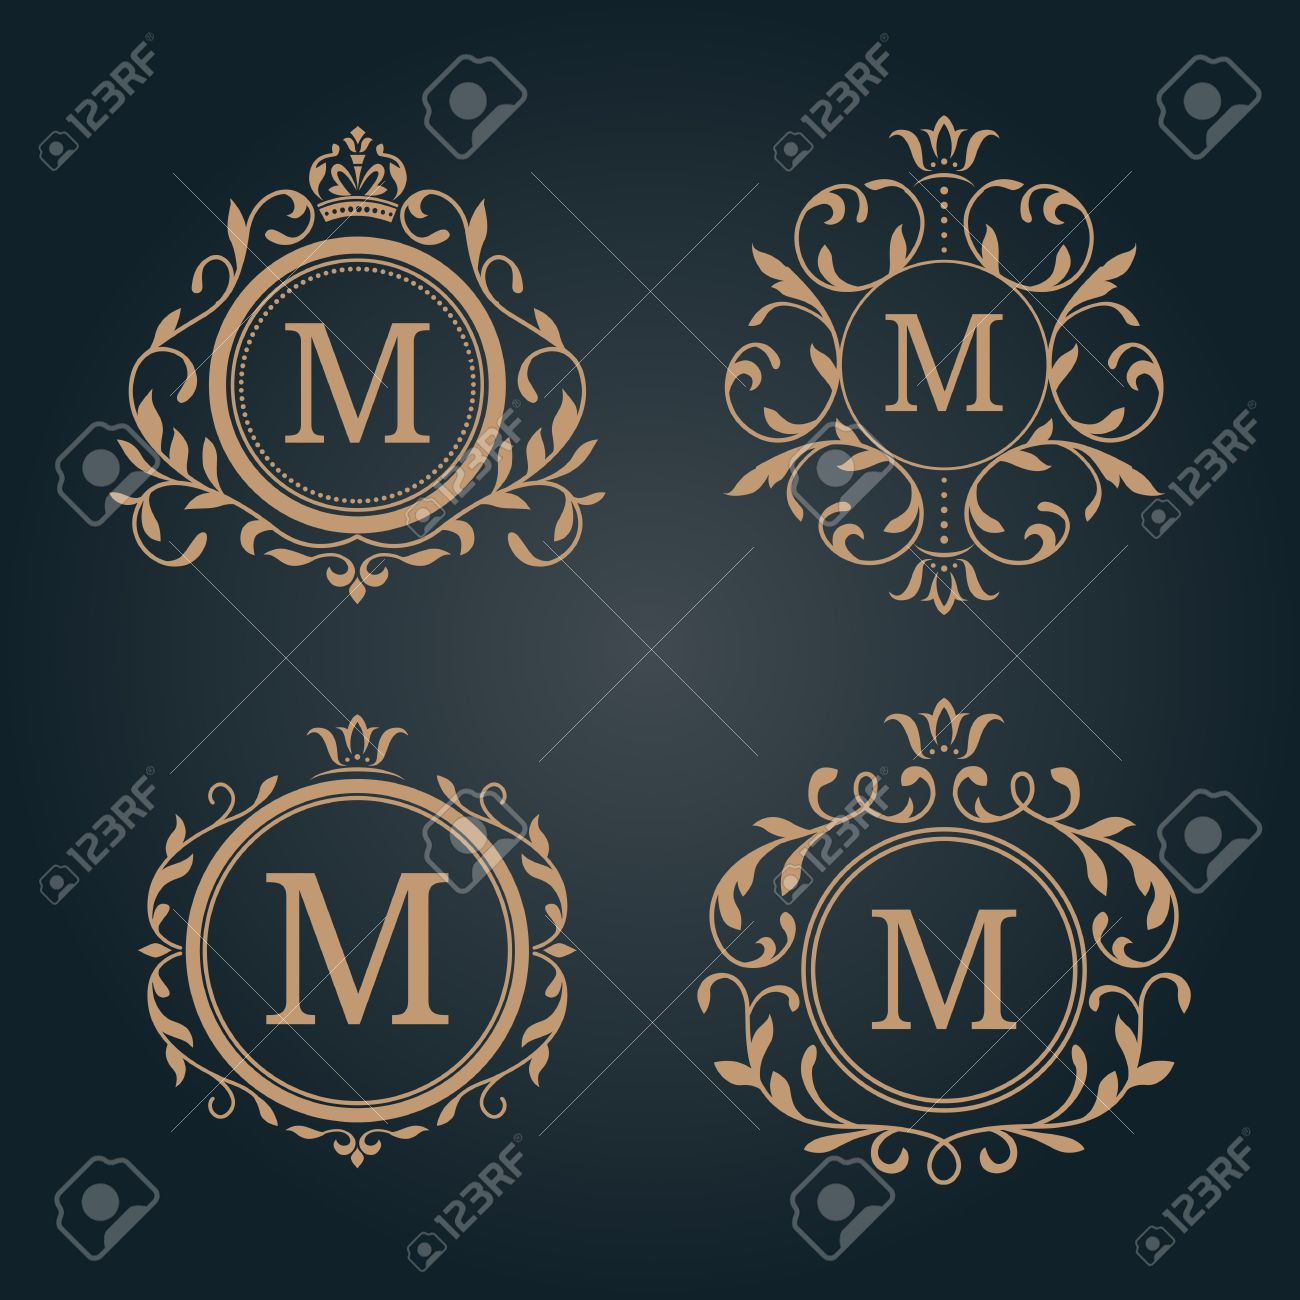 Set Of Elegant Floral Monogram Design Templates Wedding Monogram